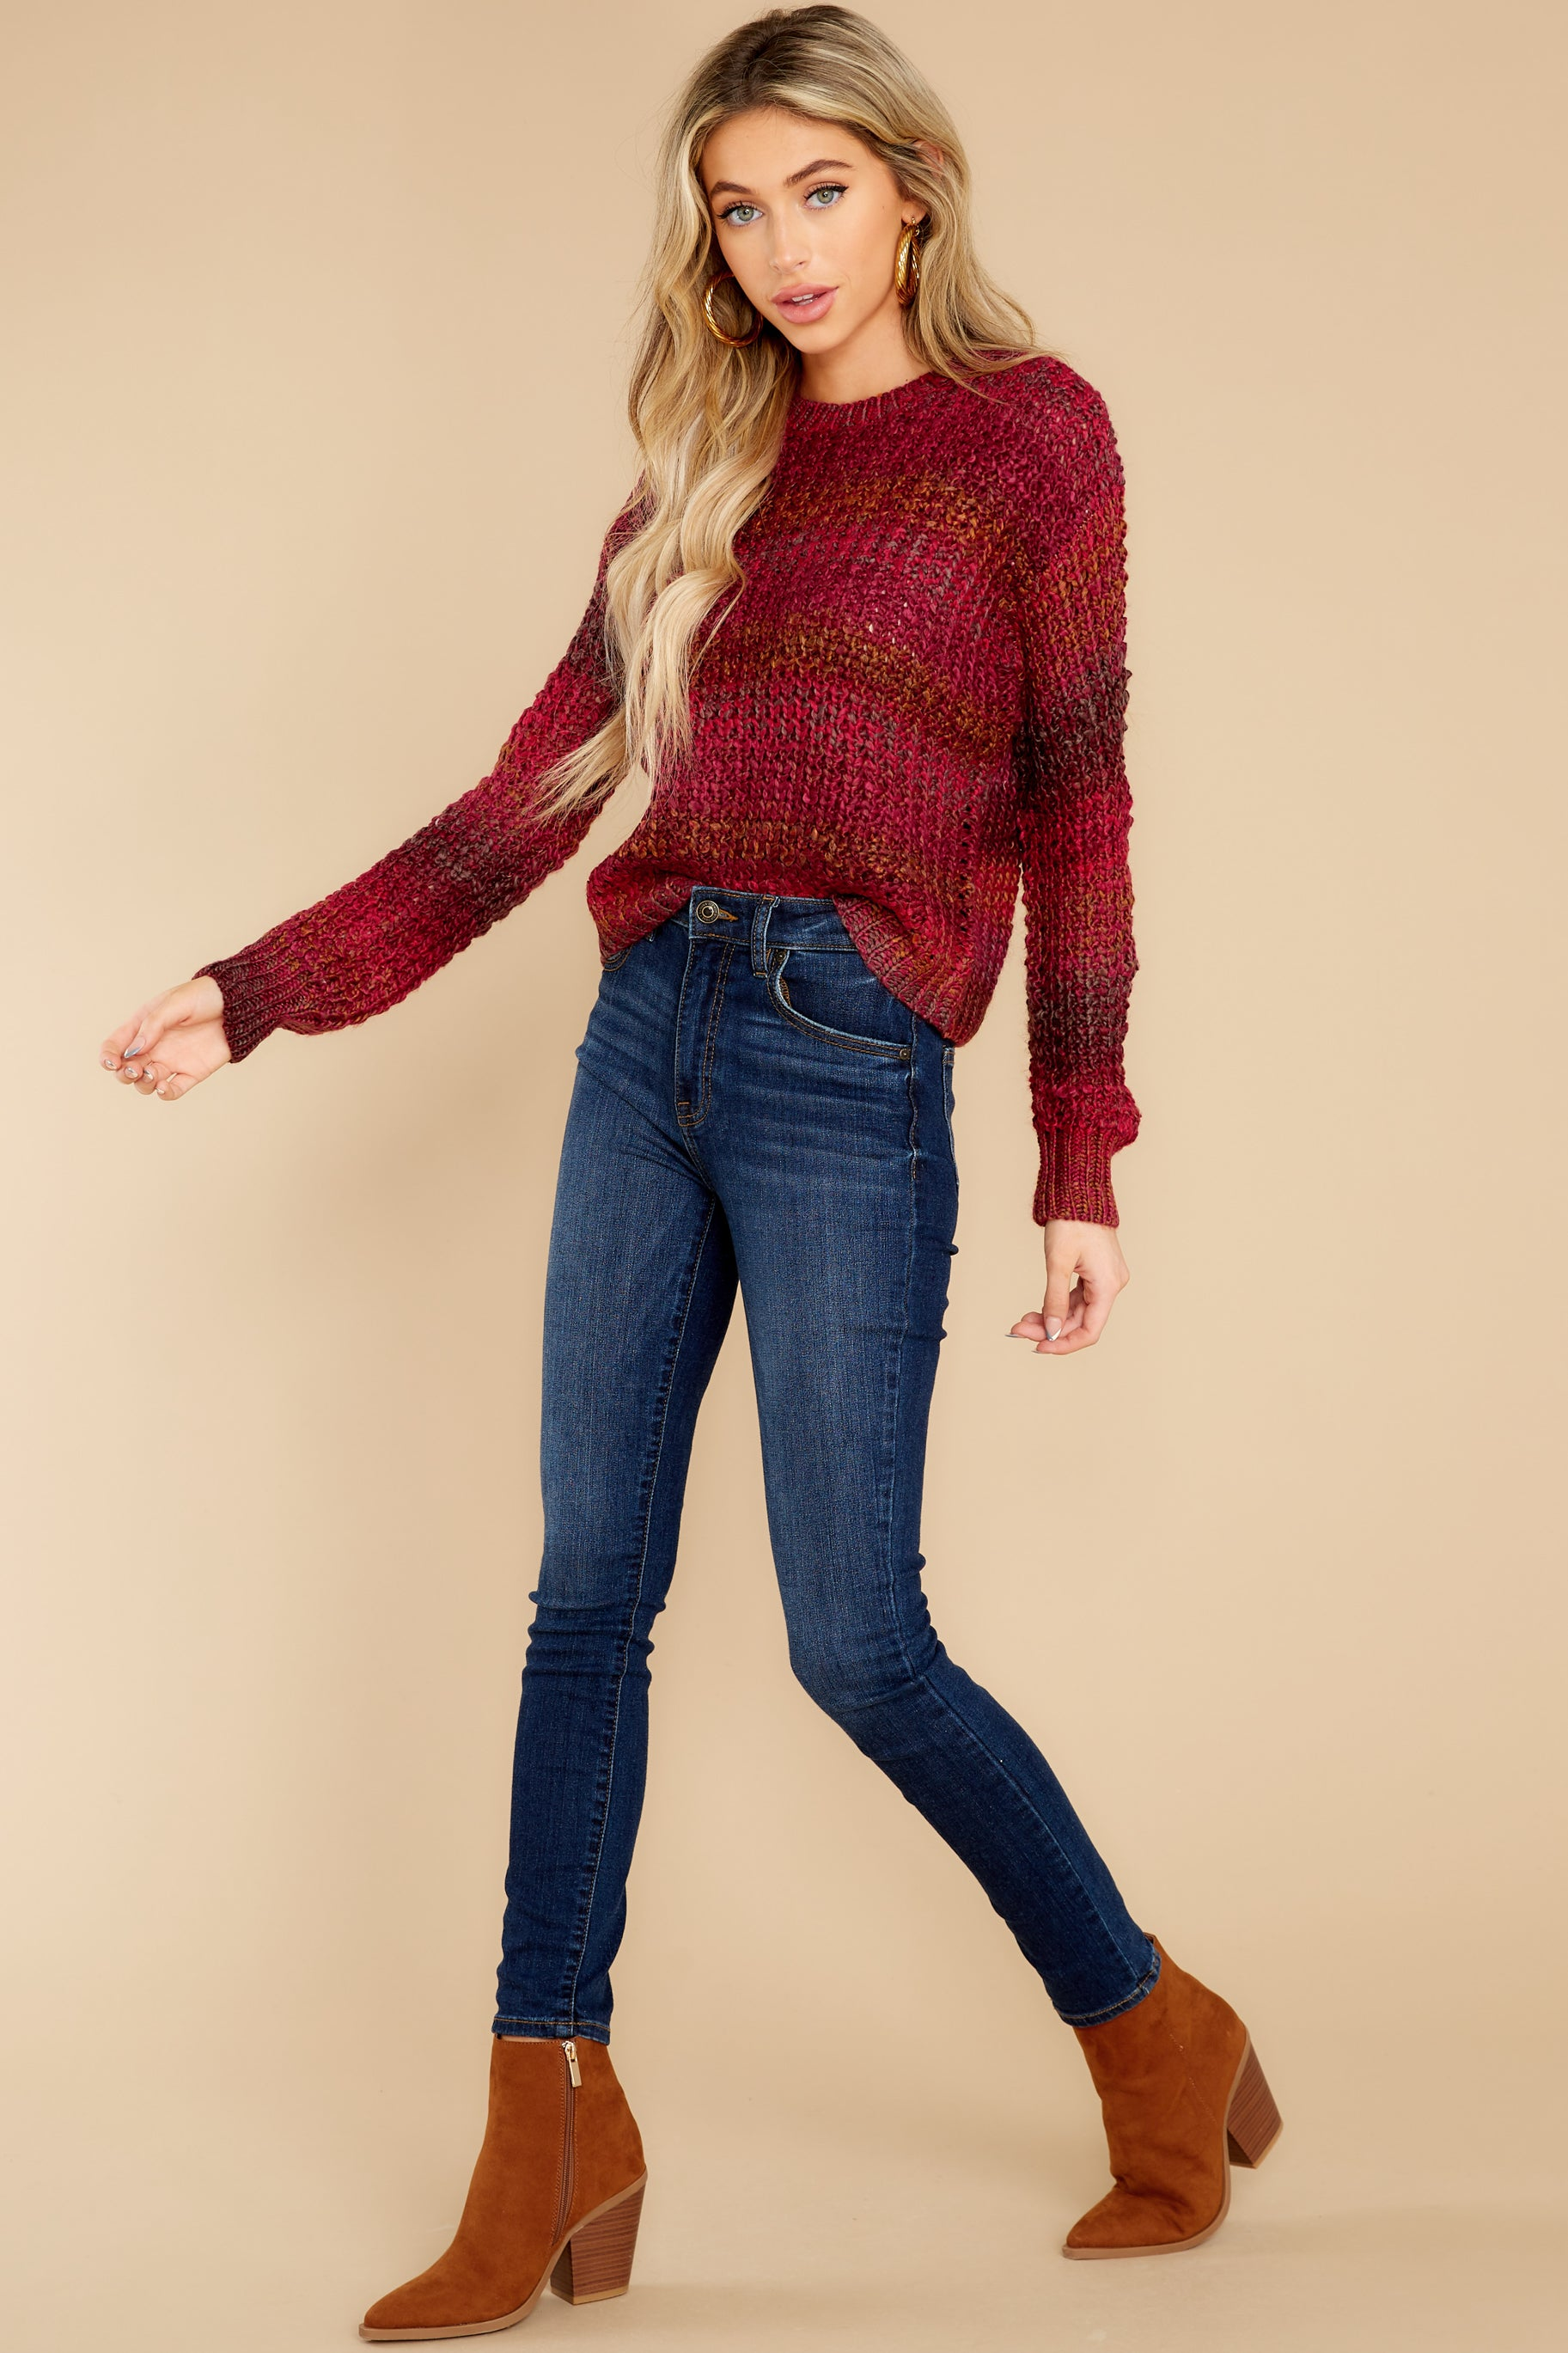 5 Catching Up Red Multi Knit Sweater at reddress.com